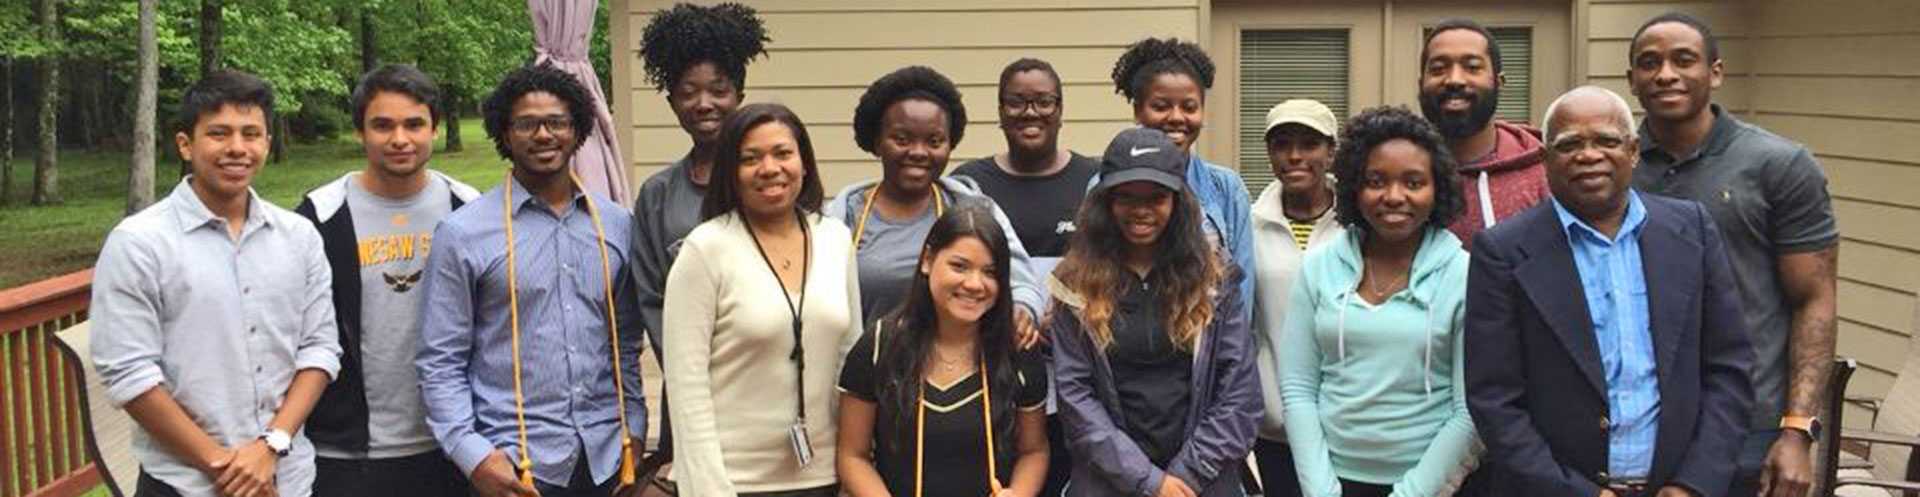 Group photo of Peach State Louis Stokes Alliance for Minority Participation (PSLSAMP) - Kennesaw campus Faculty and Students